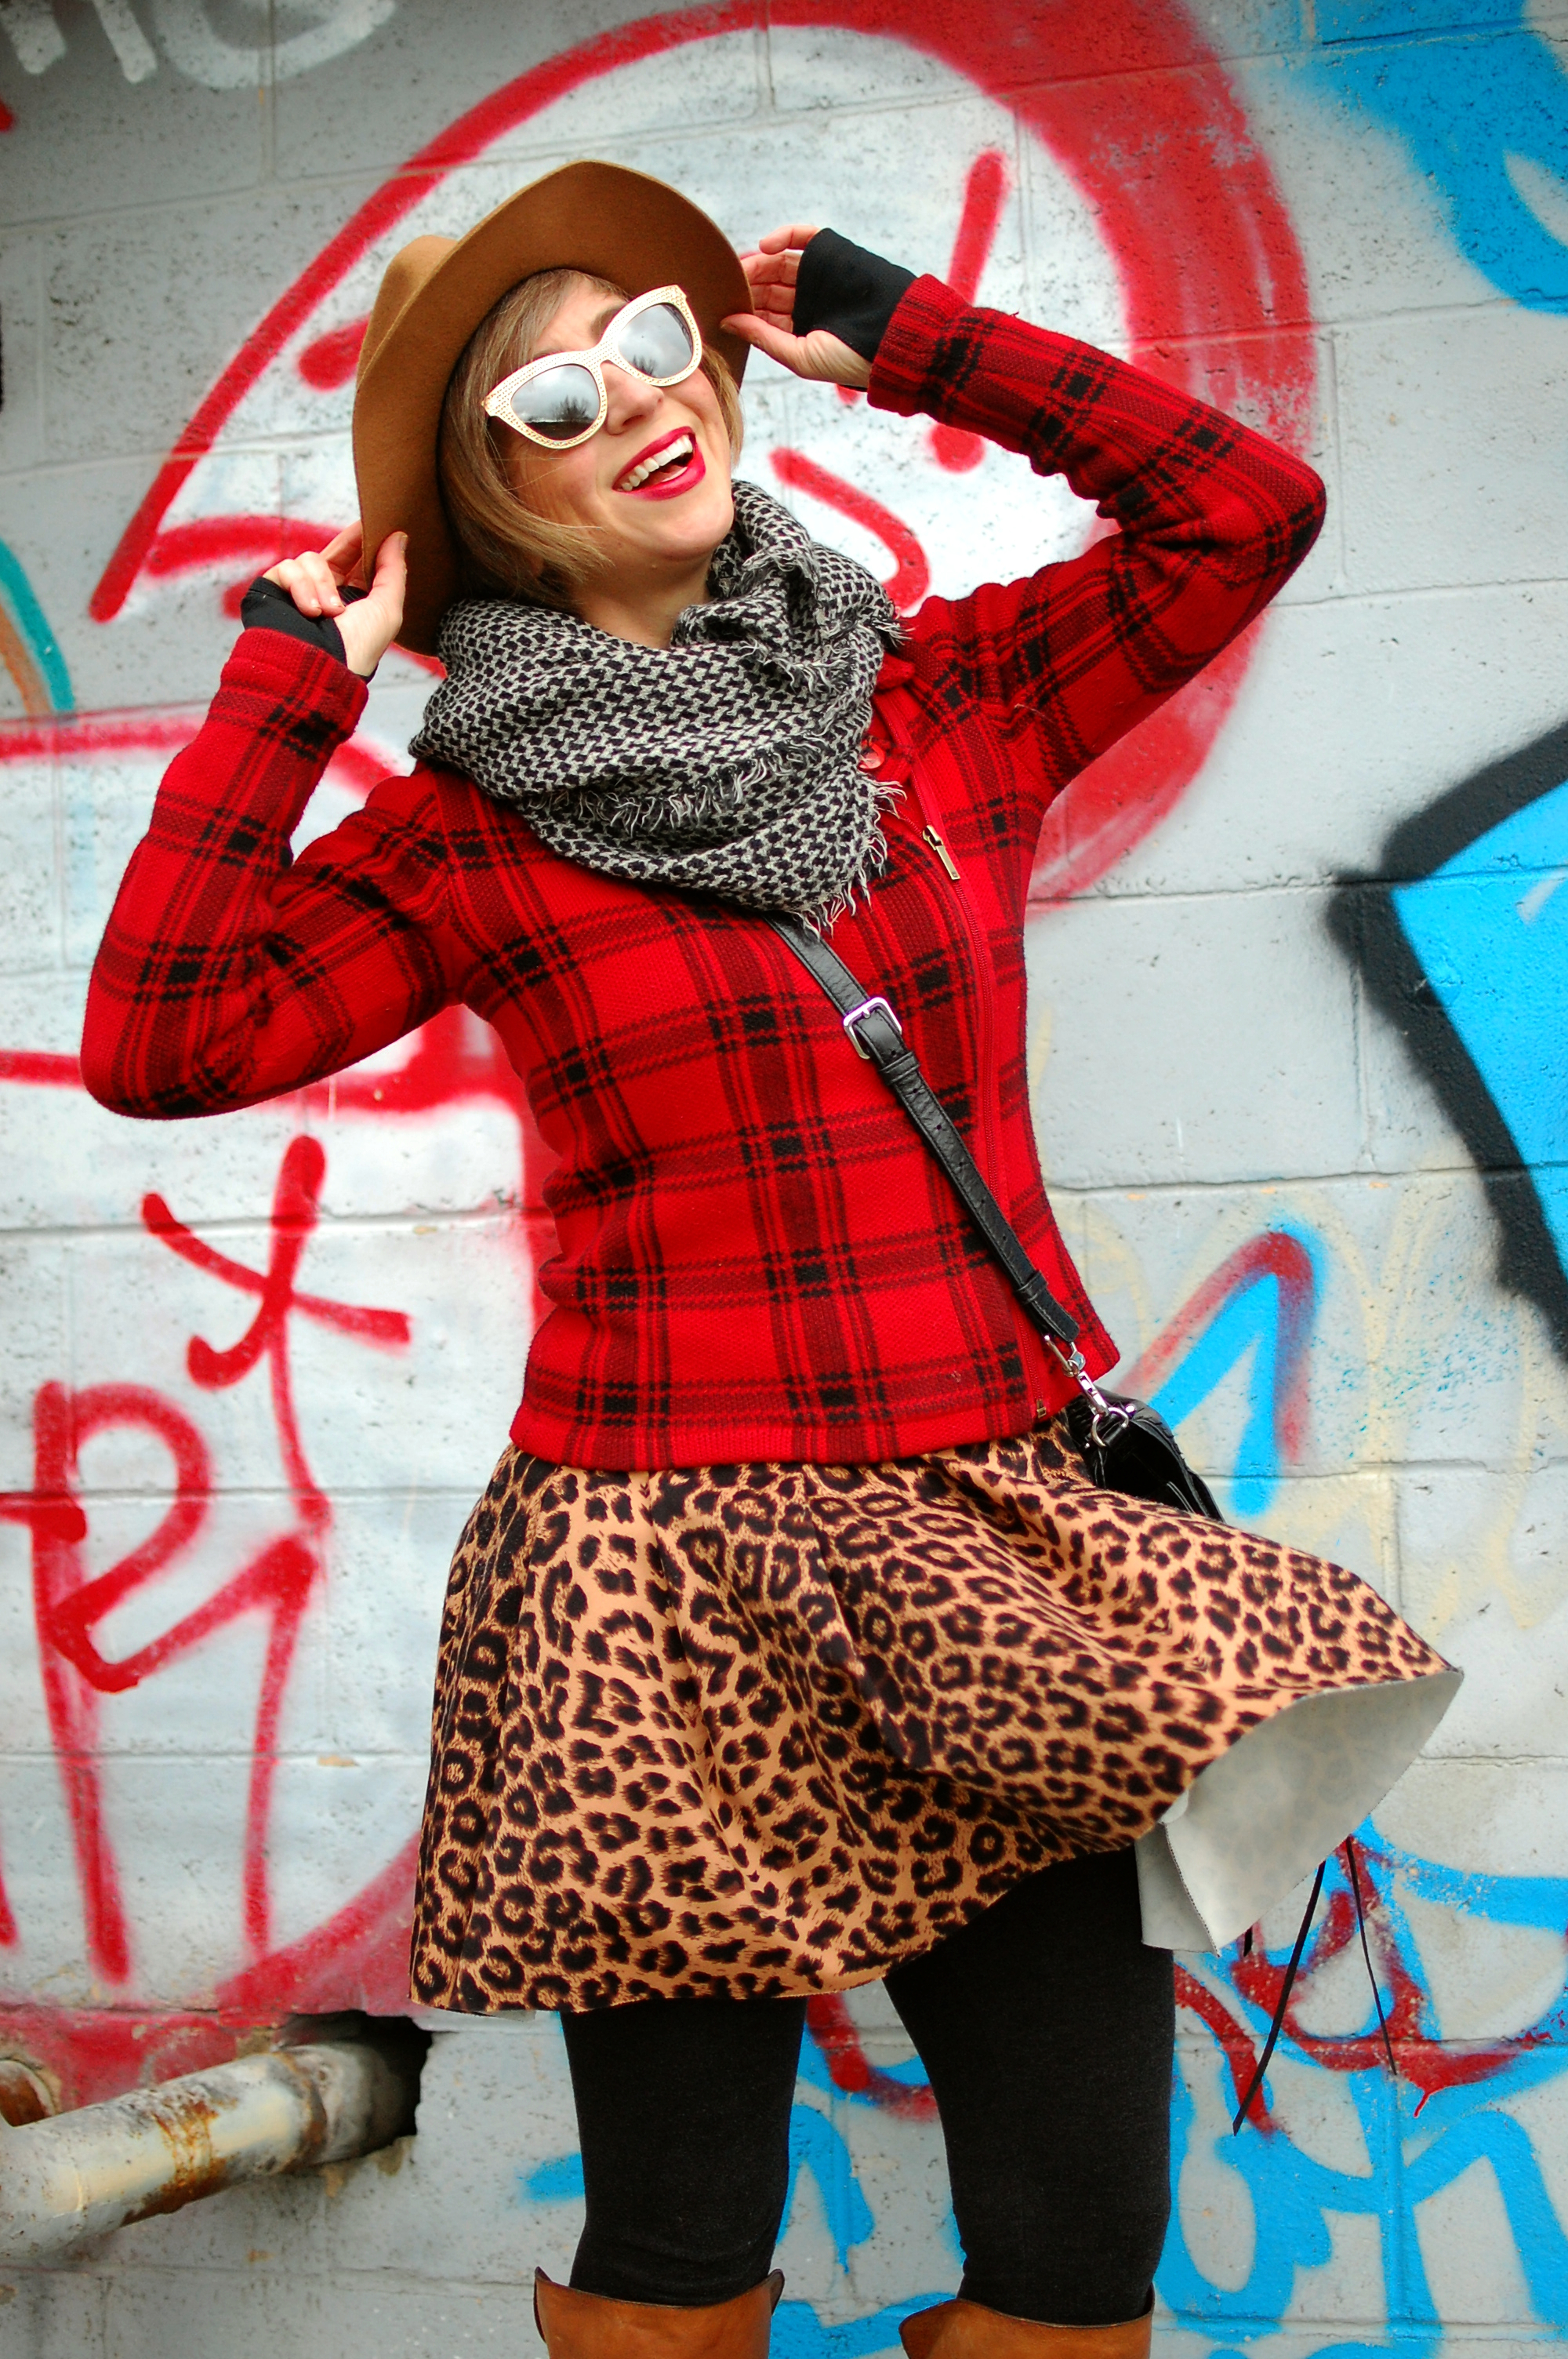 fashion blogger ootd plaid leopard pattern mix ootd whatiwore2day